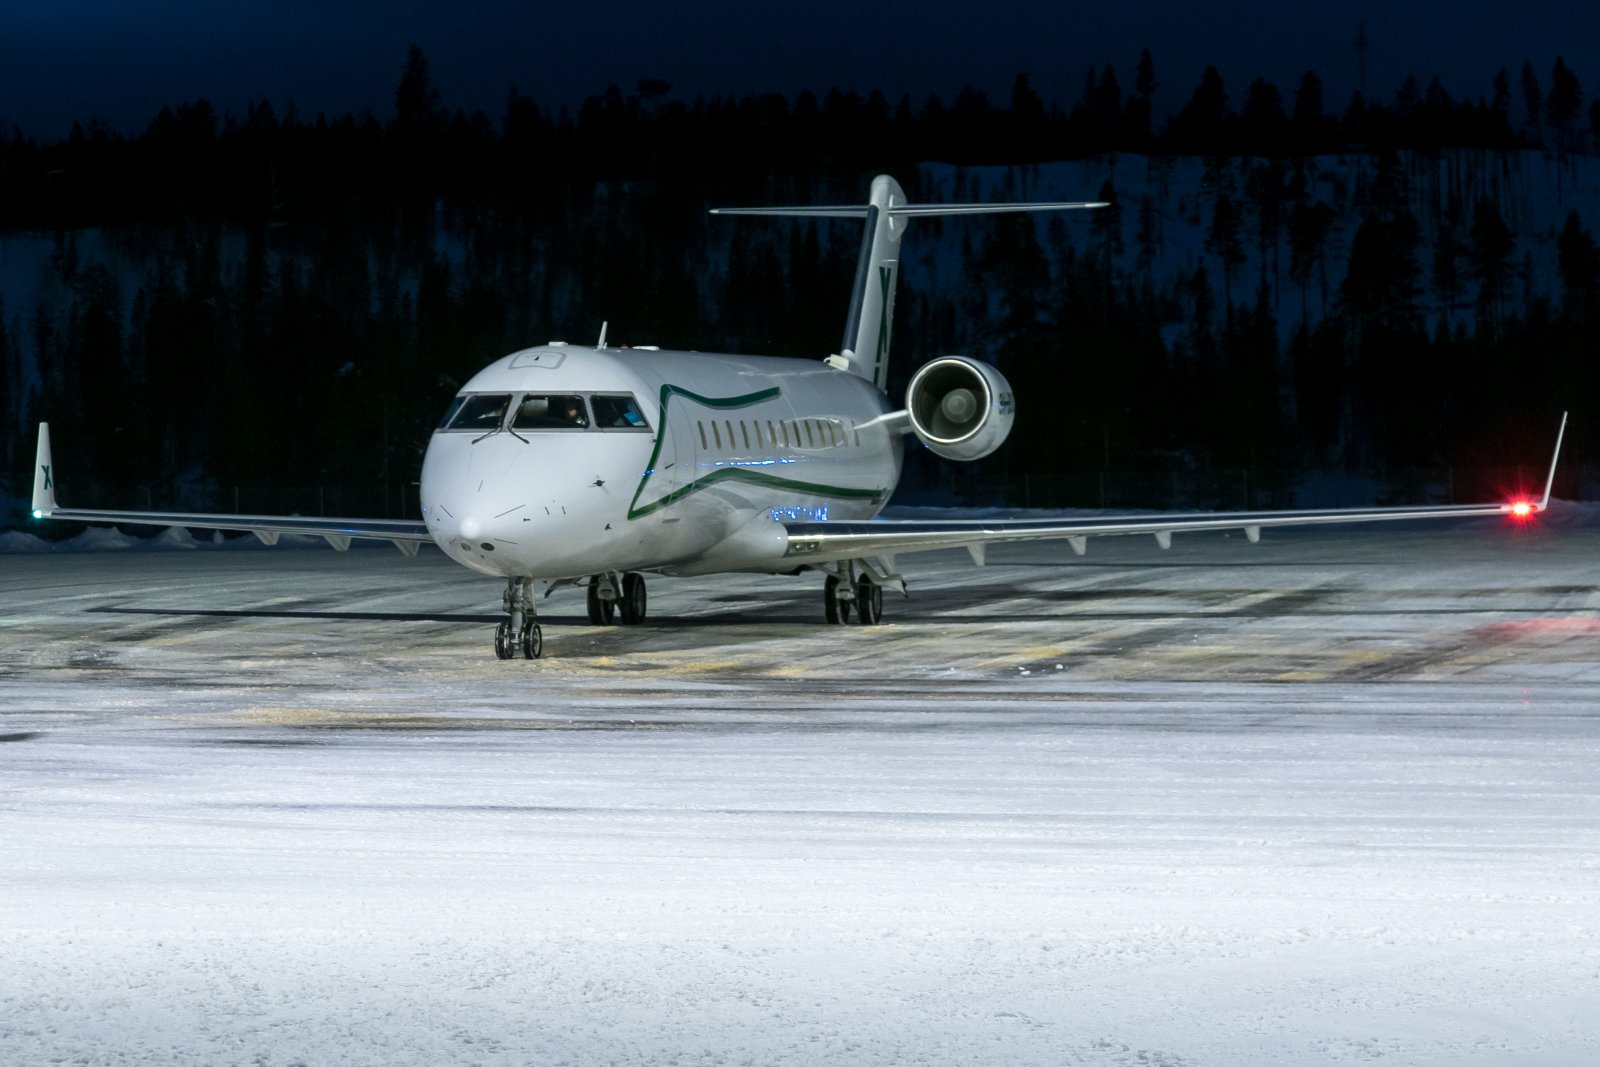 9H-BOO. 29.12.2019. Bombardier Challenger 850.